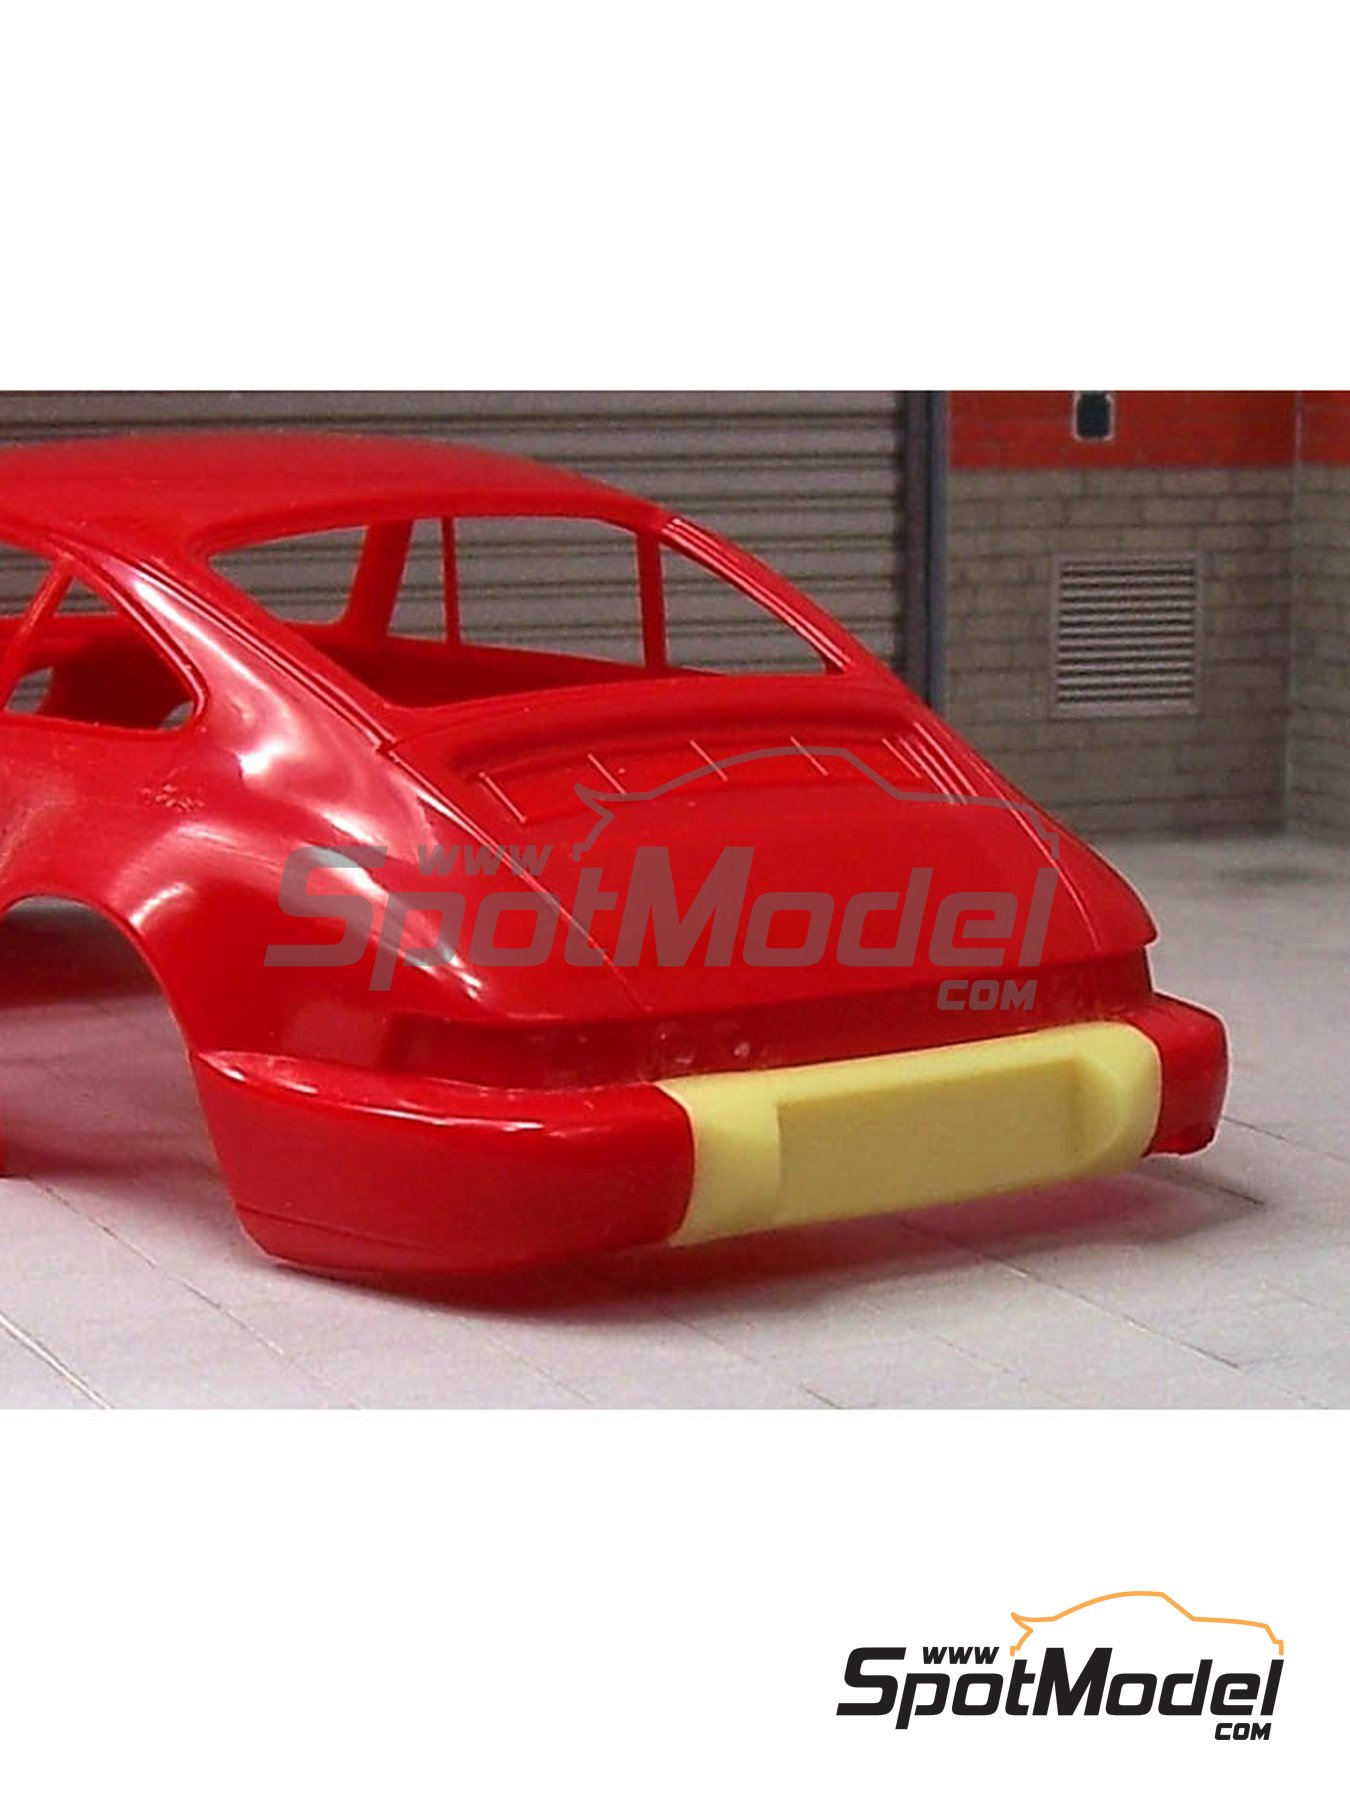 Porsche 964 RS bumper | Transkit in 1/24 scale manufactured by Scale Production (ref. SP24231) image